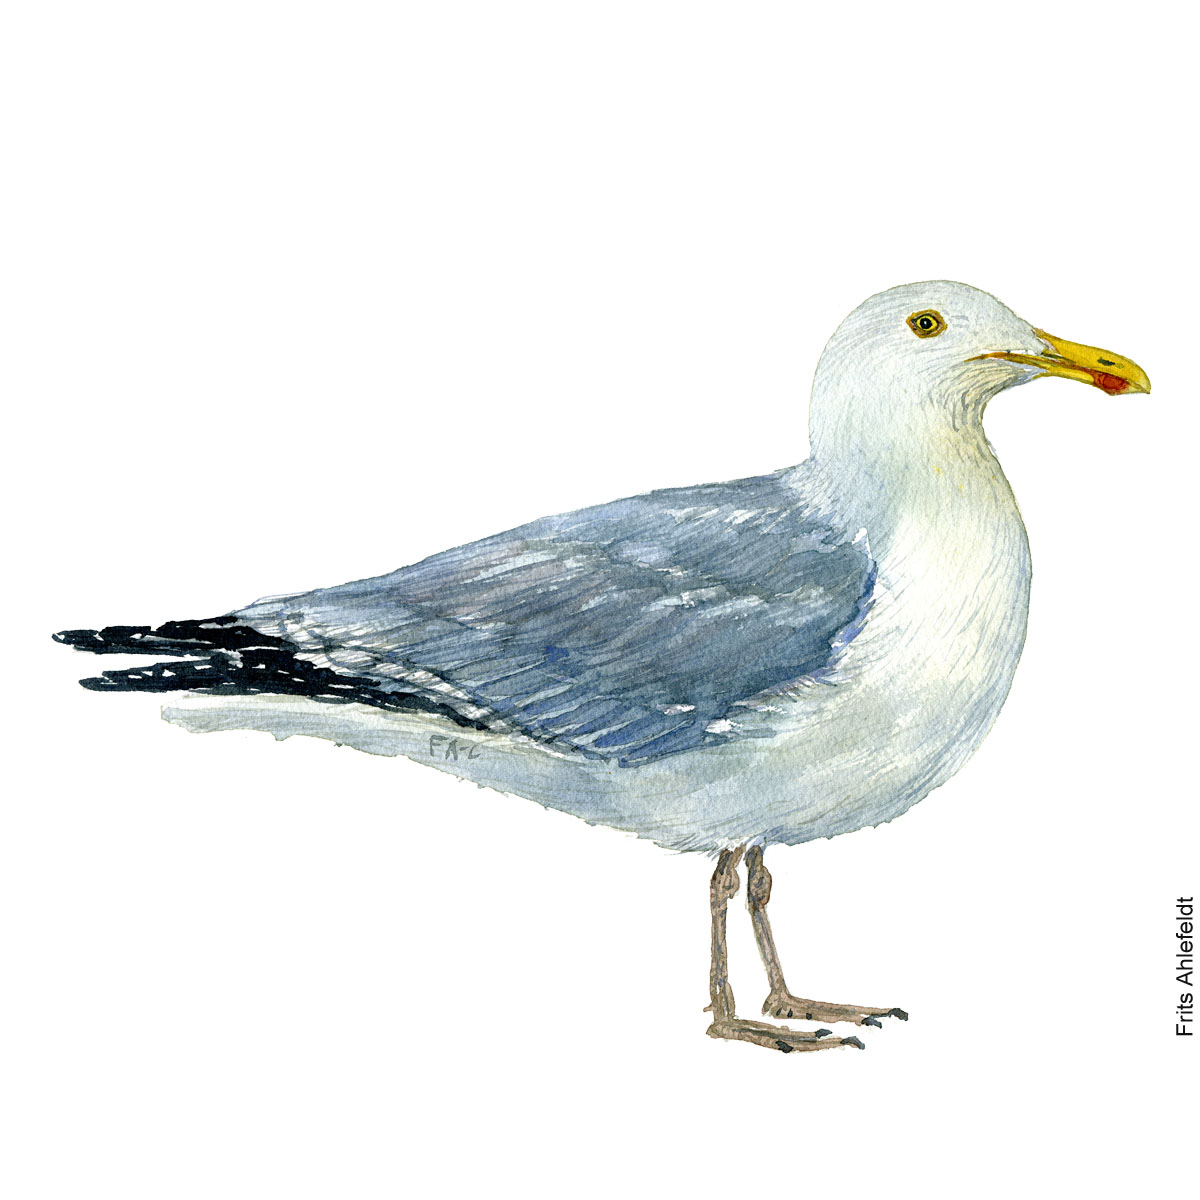 European herring gull. Bird watercolor illustration handmade by Frits Ahlefeldt